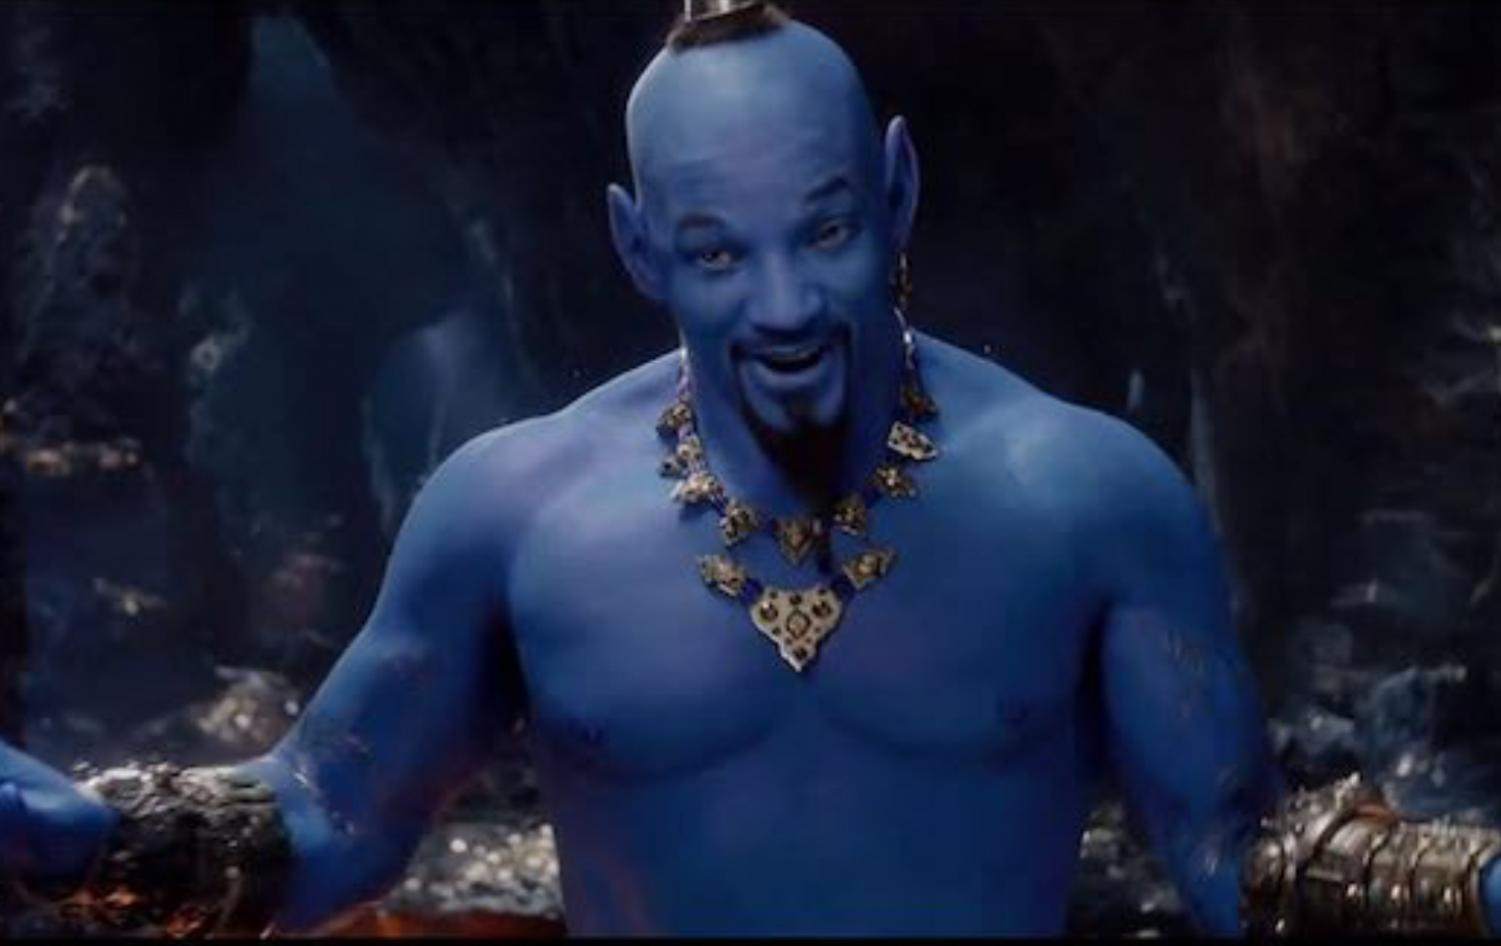 Will Smith as the genie in Disney's live action Aladdin (image courtesy of Disney's Aladdin trailer)